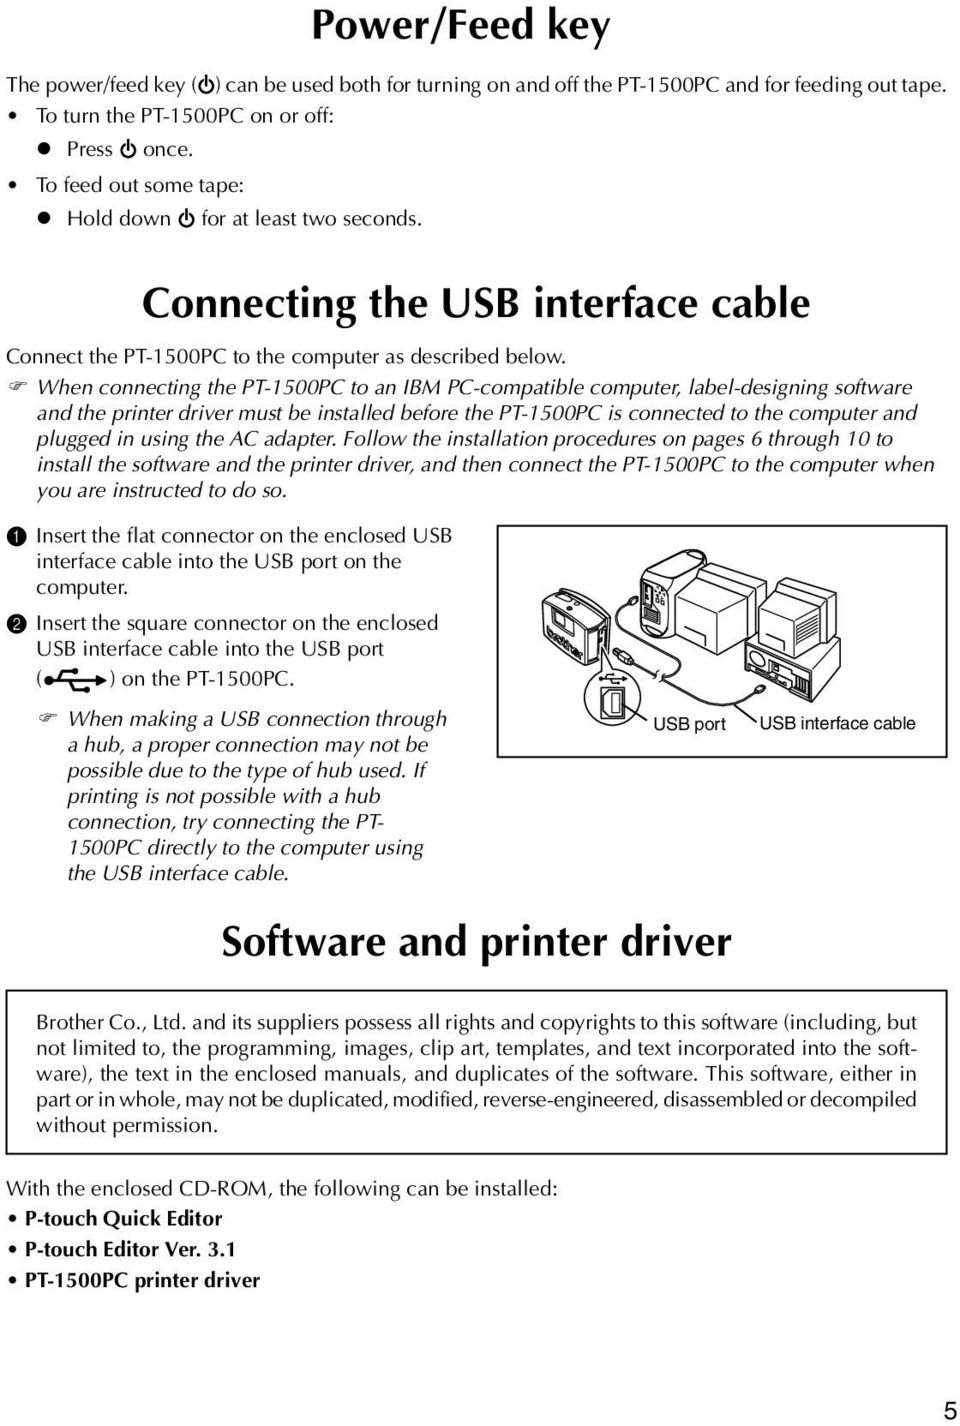 When connecting the PT-1500PC to an IBM PC-compatible computer, label-designing software and the printer driver must be installed before the PT-1500PC is connected to the computer and plugged in